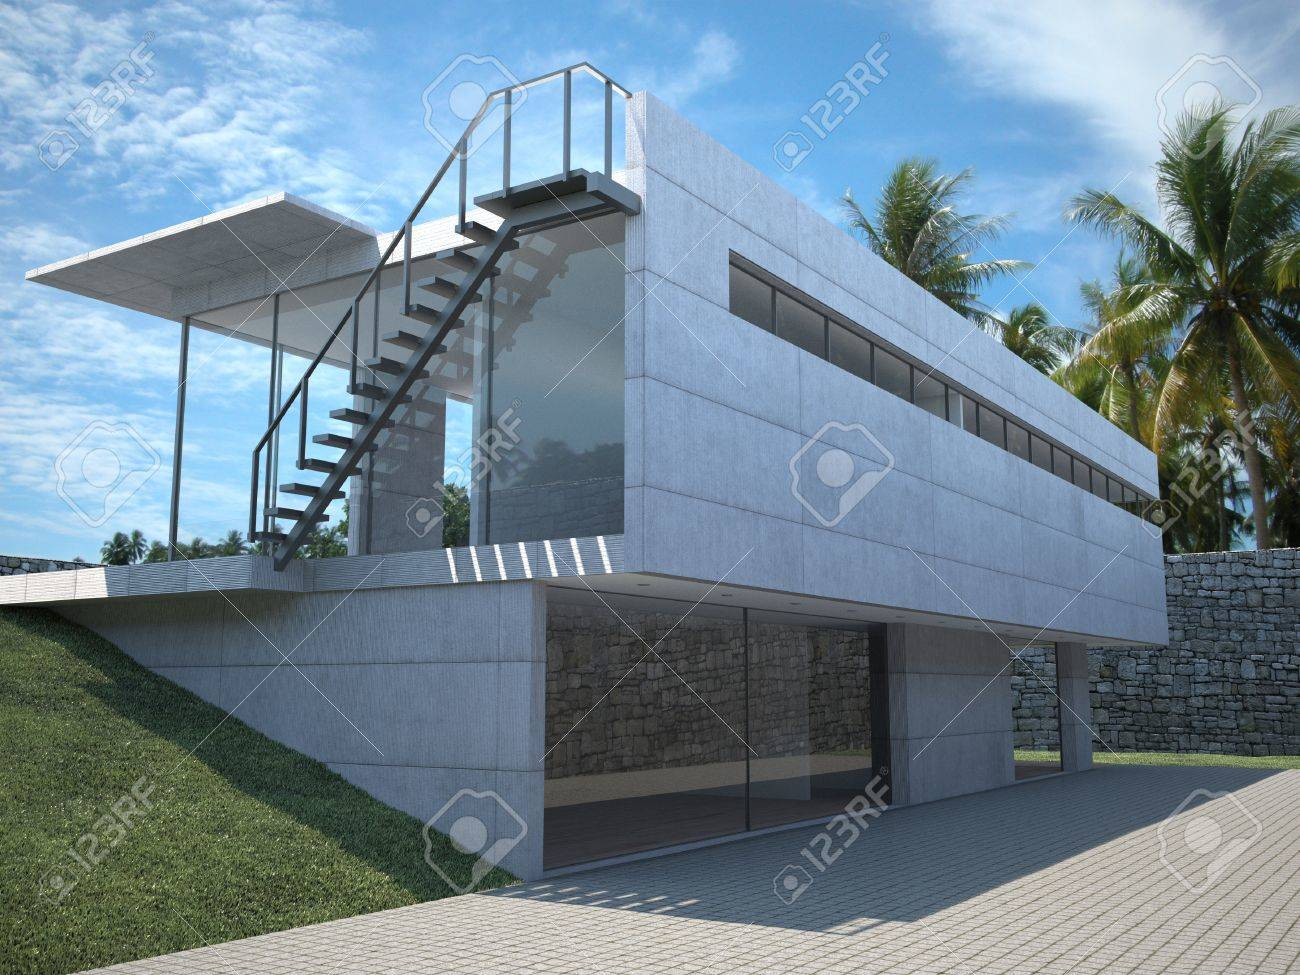 Modern House - xterior View With Palms Stock Photo, Picture nd ... - ^